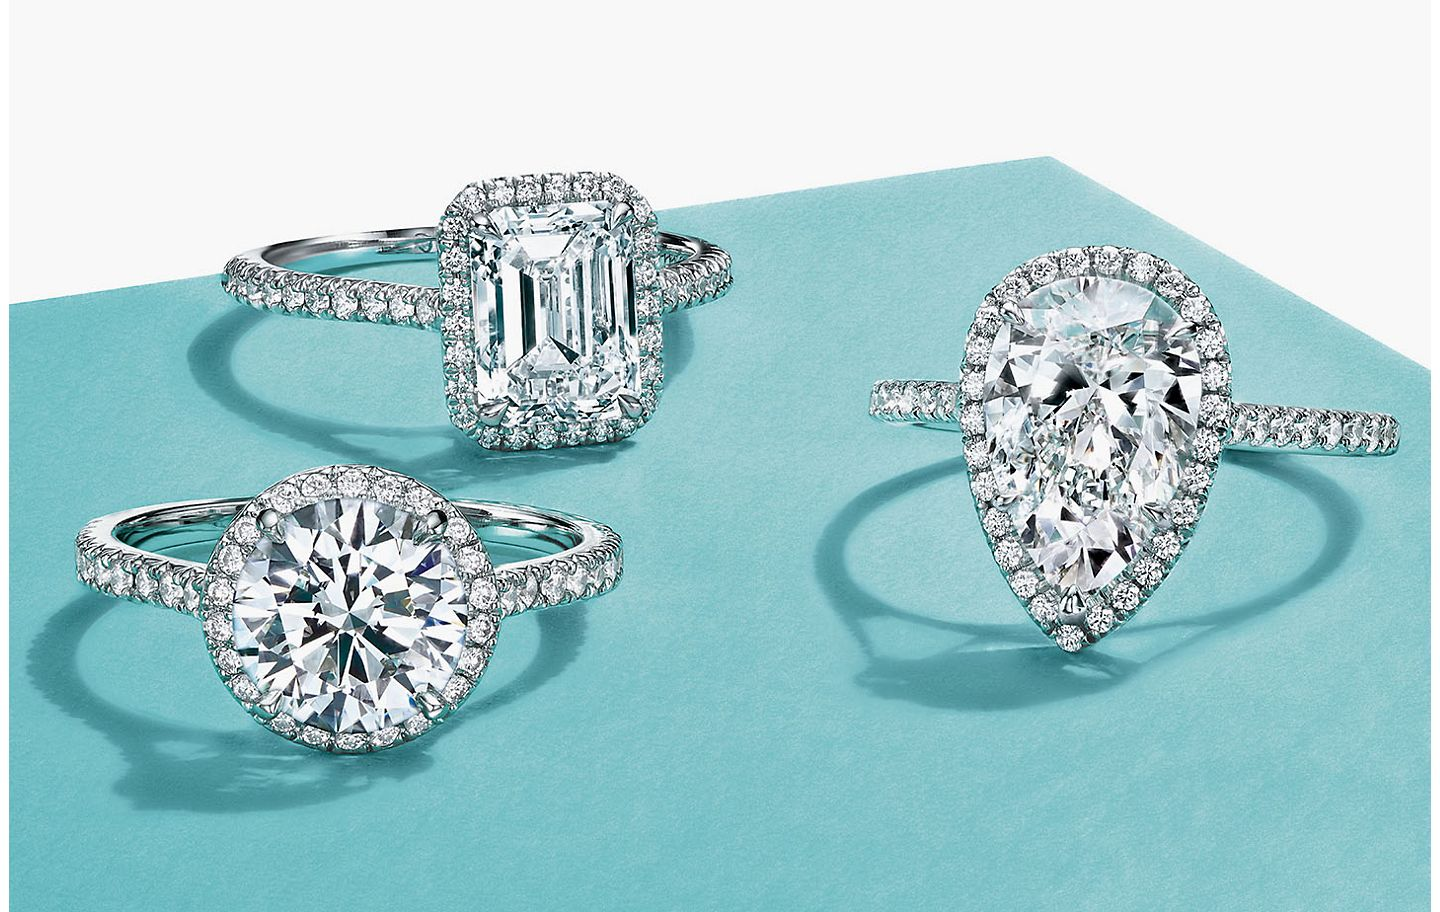 Tiffany & Co. Halo Engagement Rings